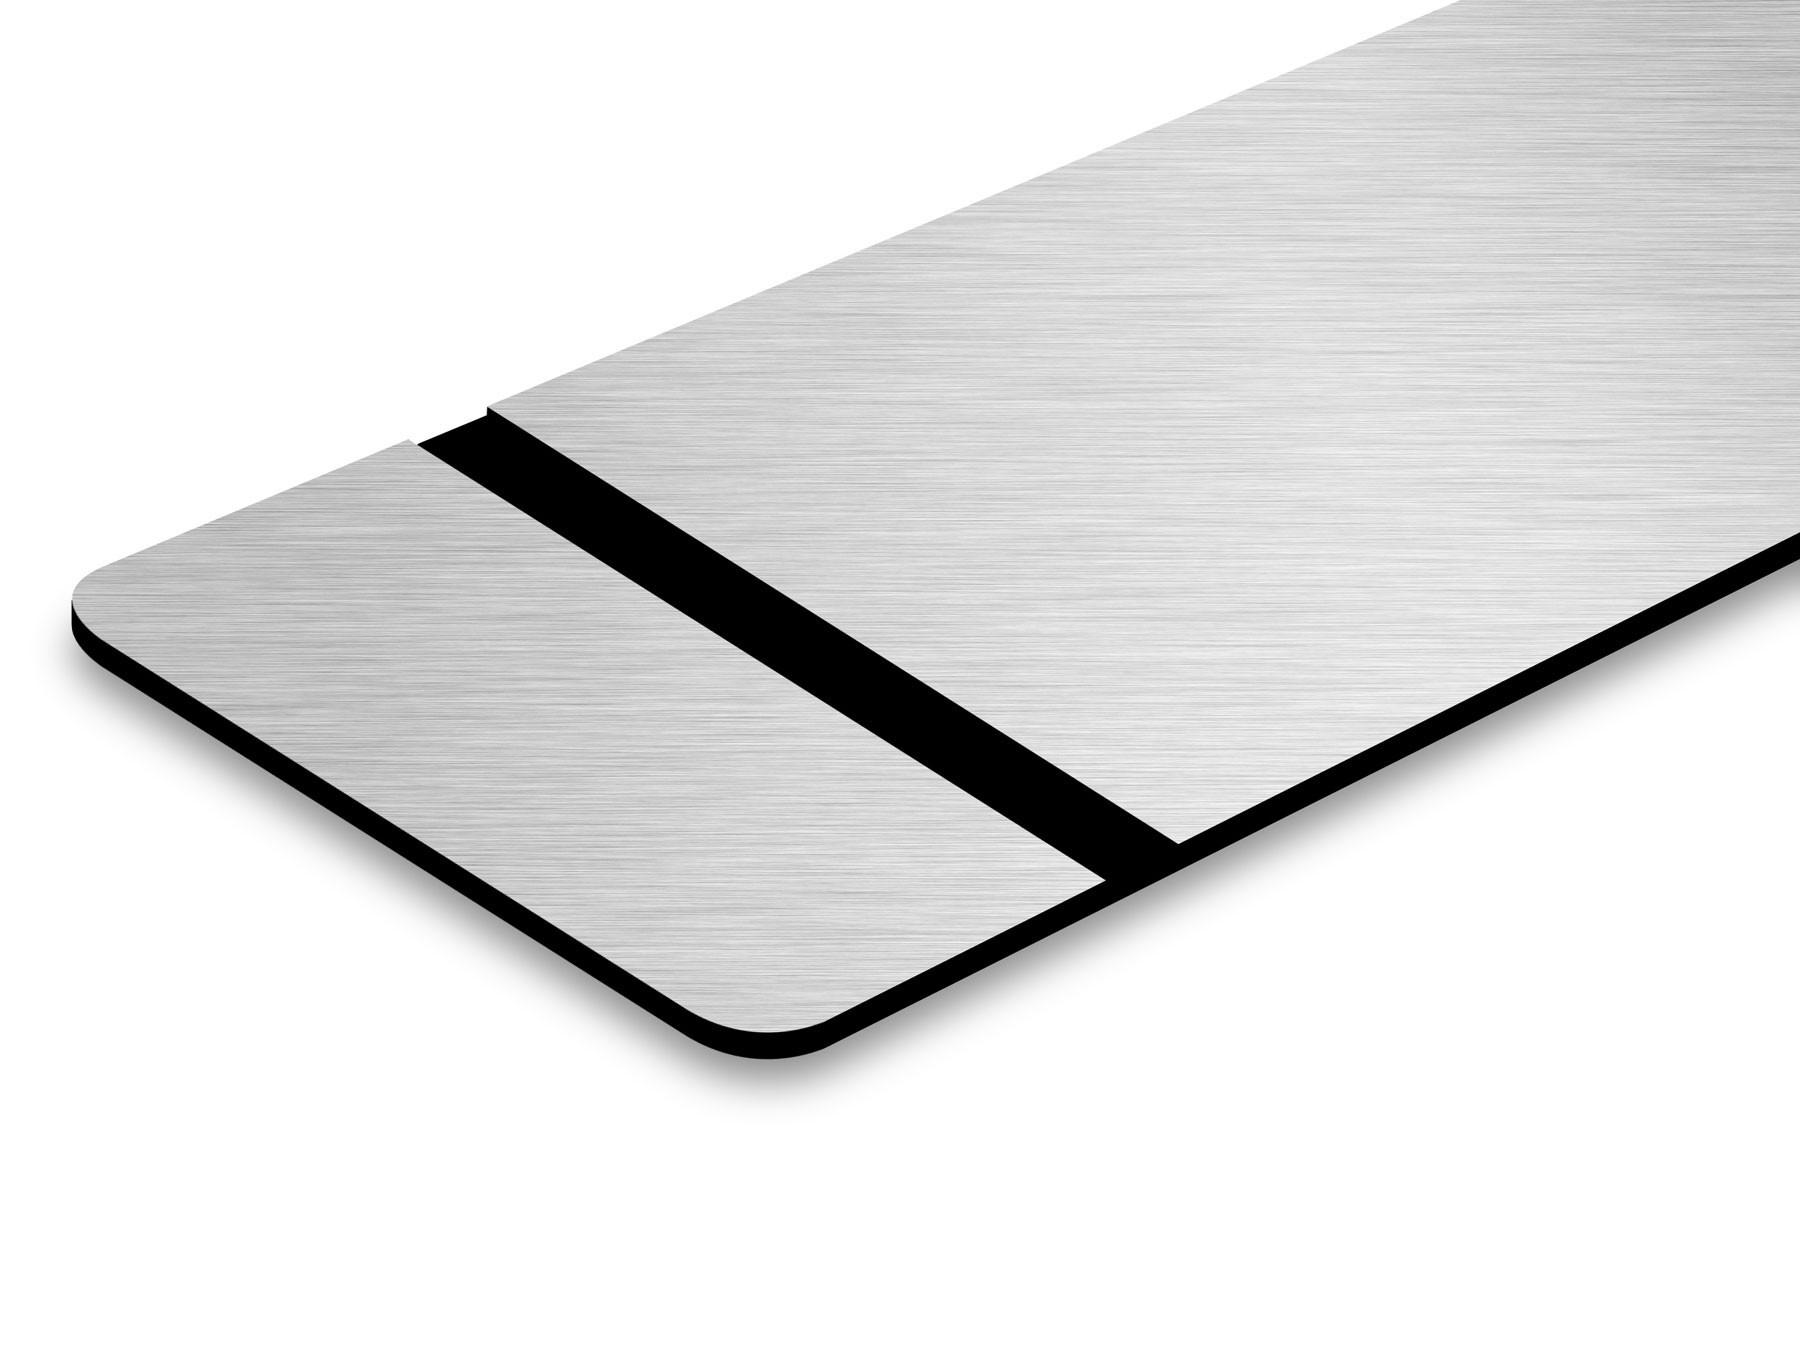 TroLase Thins, Brushed Aluminium/Black, 2ply, 0.5 mm